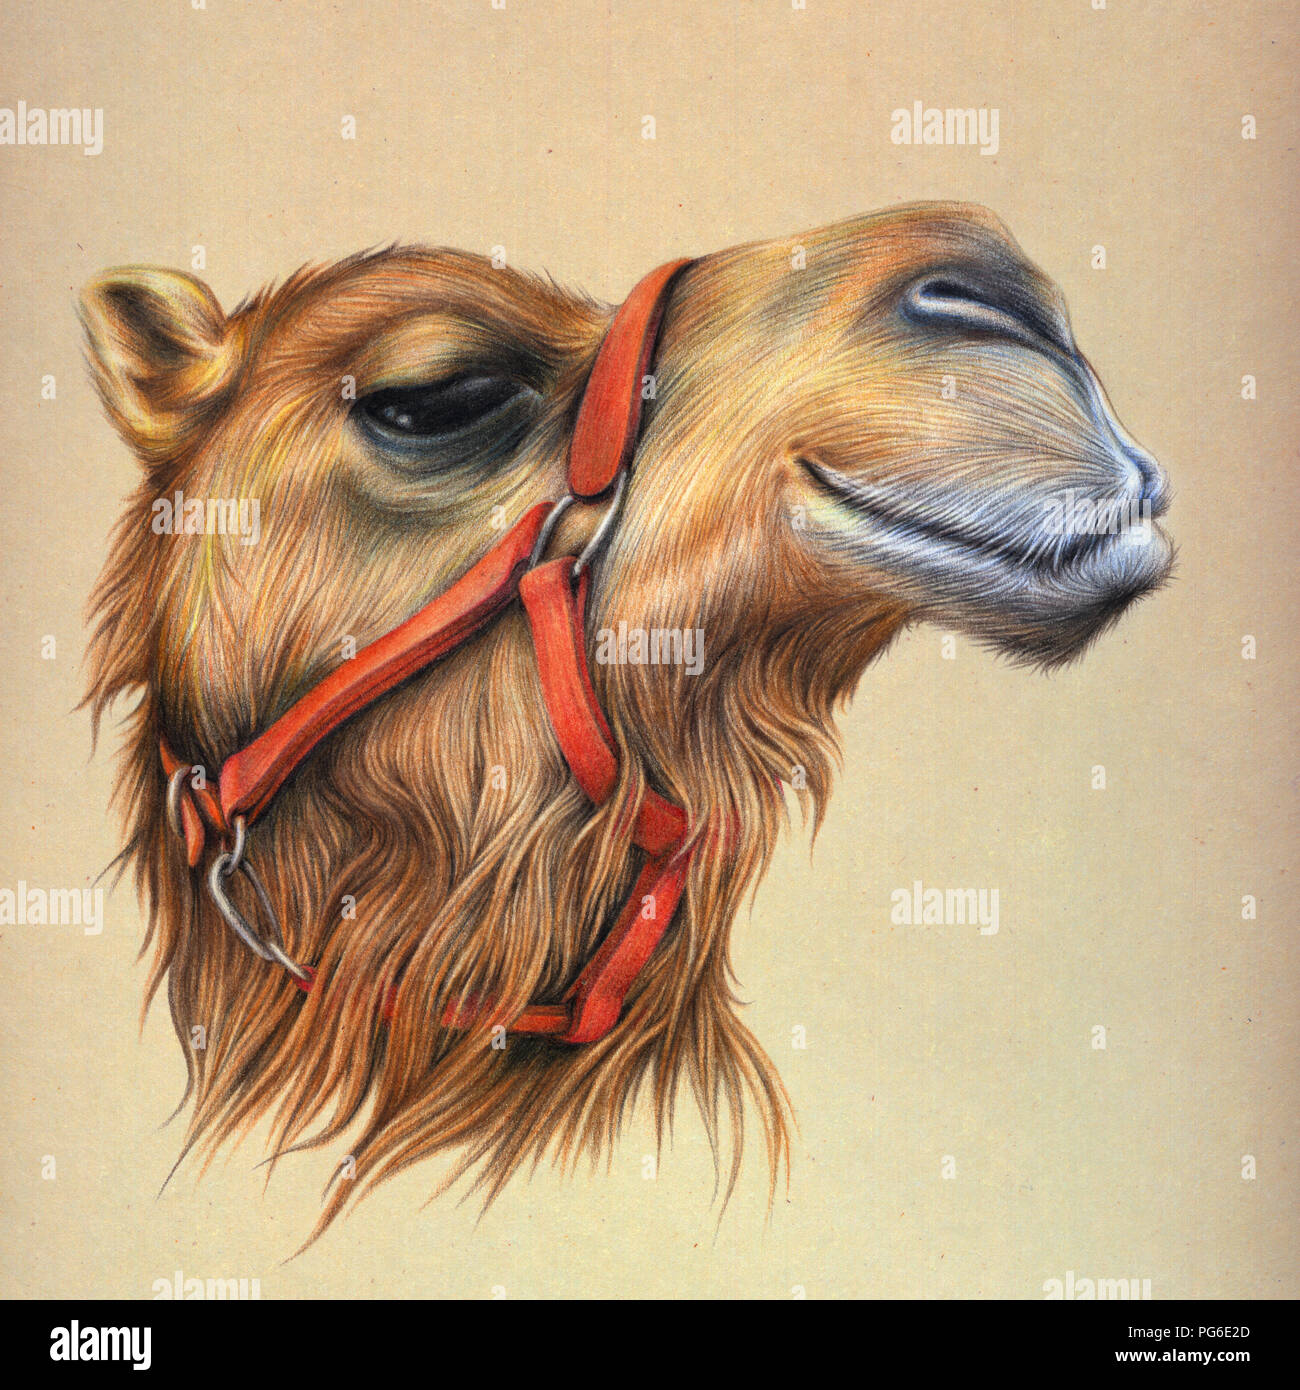 Camel Portrait, Colored Pencil Stock Photo: 216501669 - Alamy